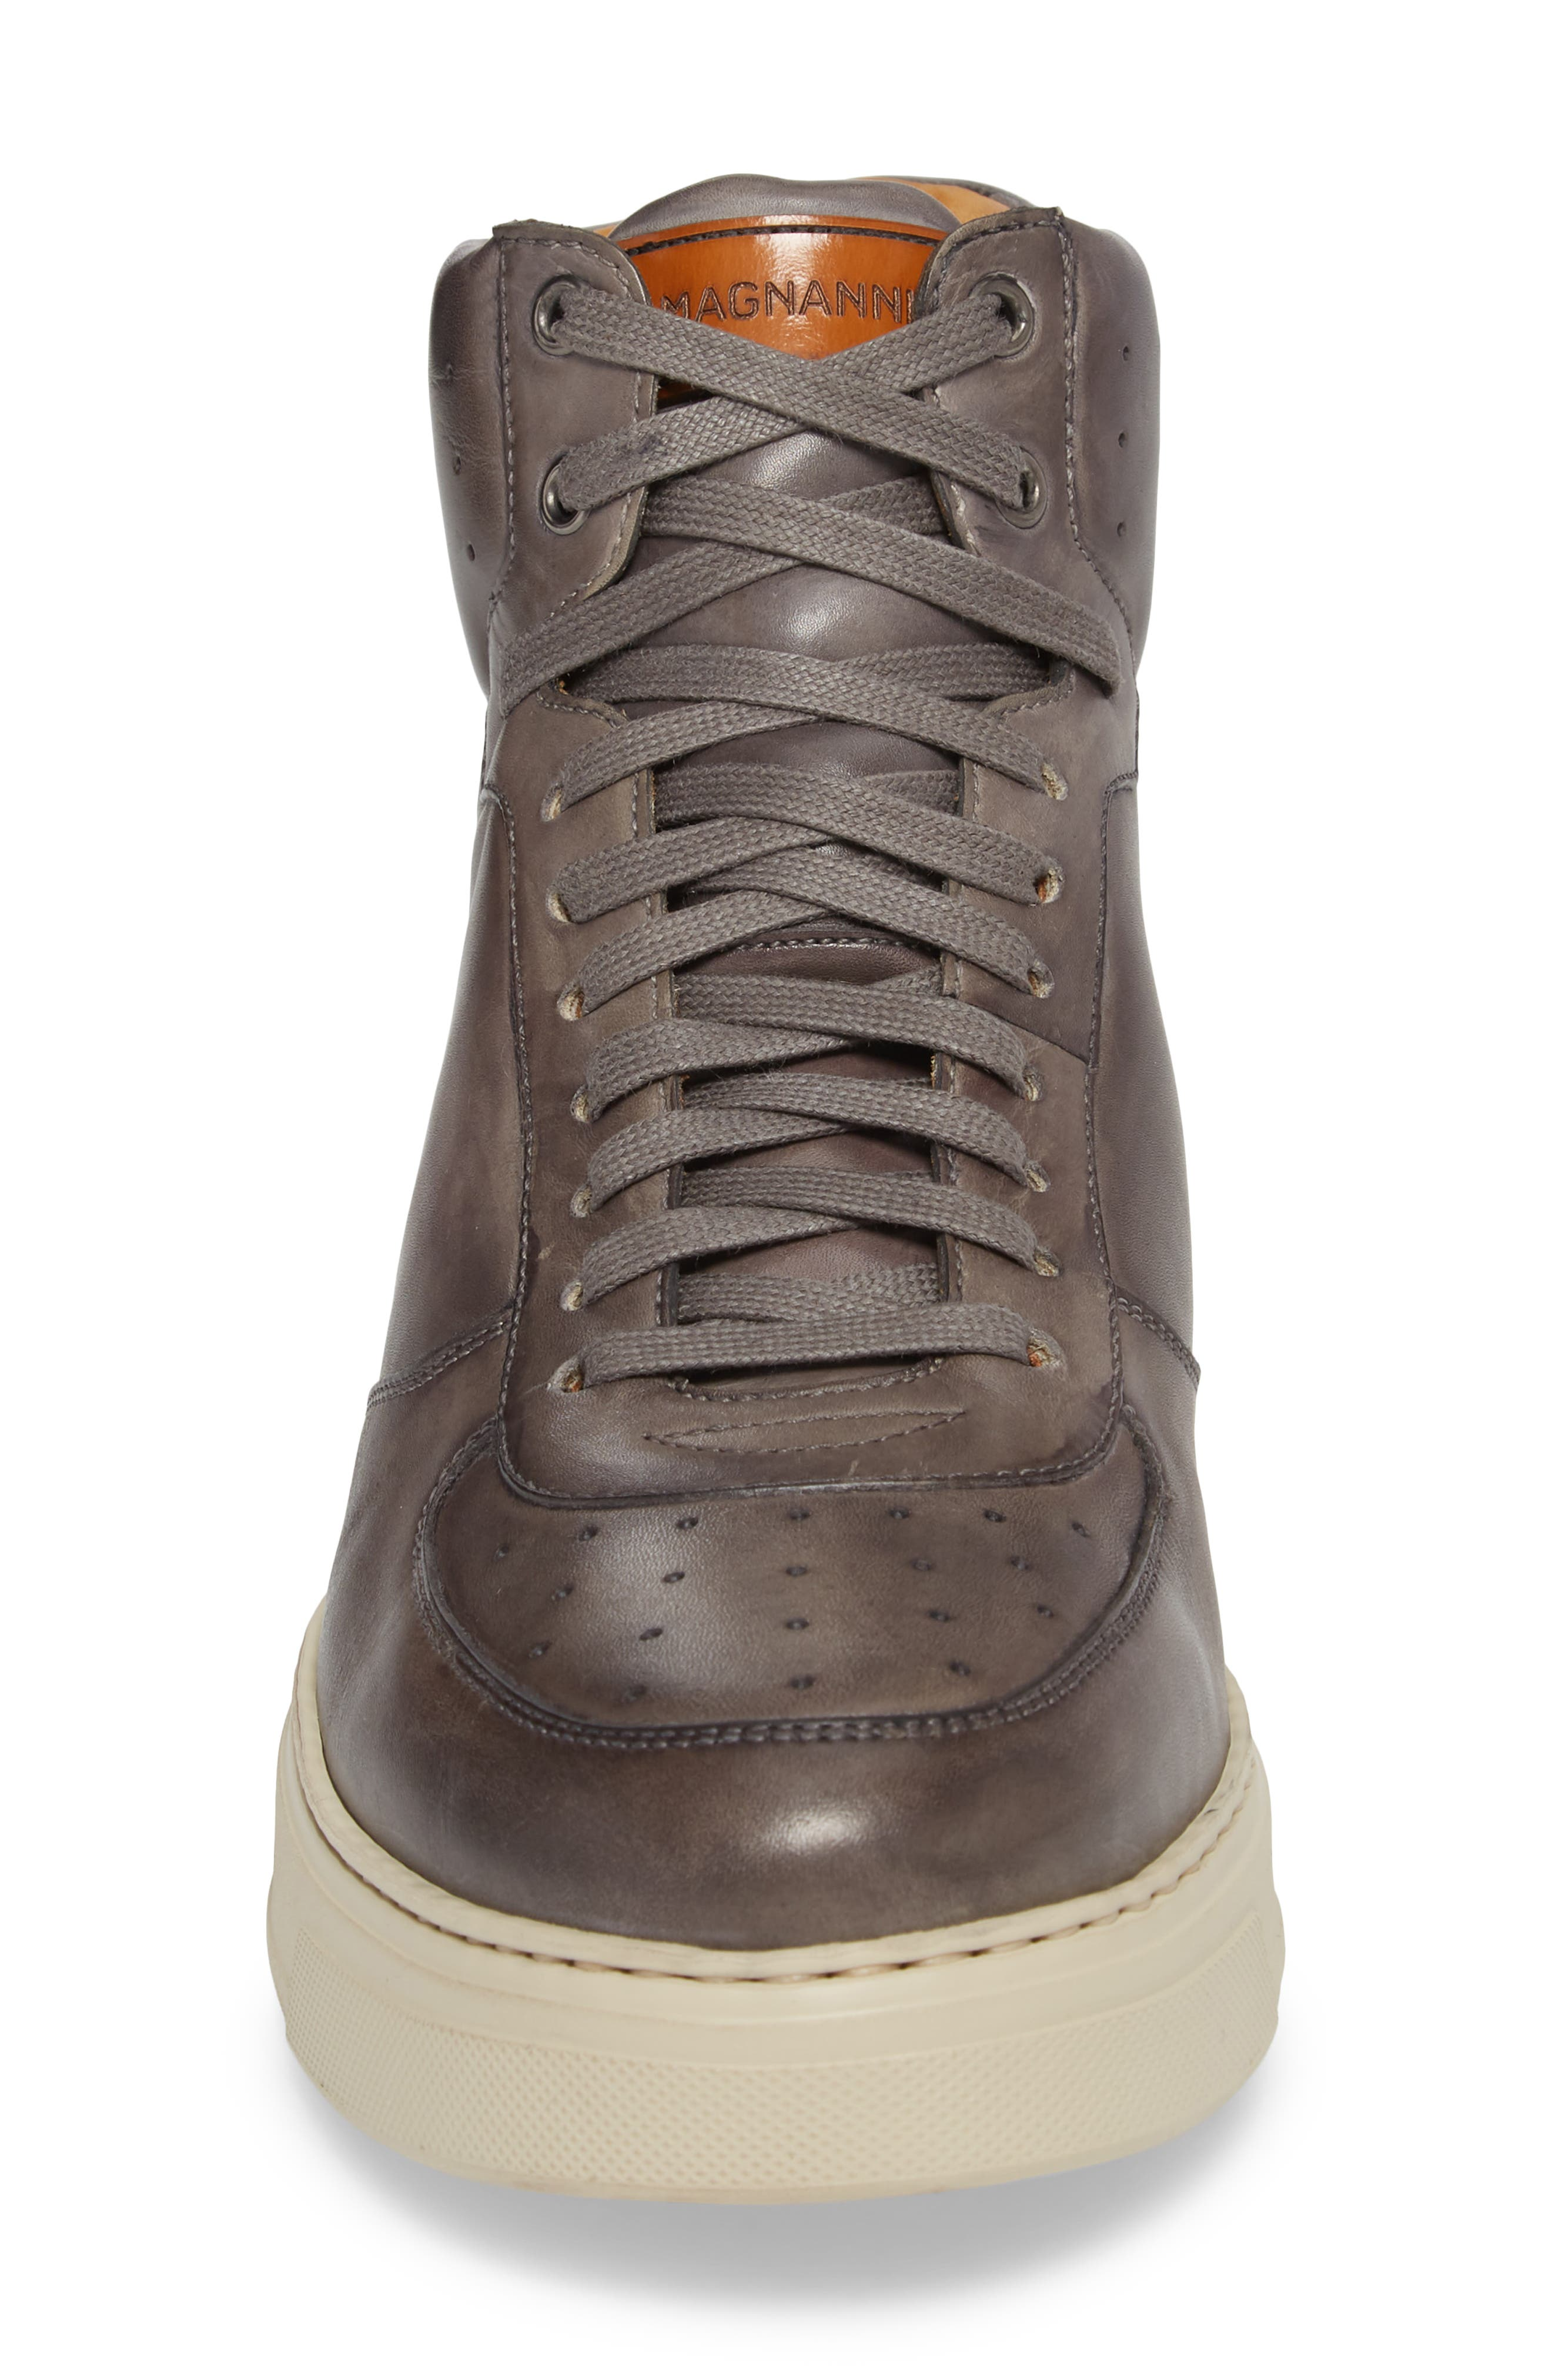 Varro Hi Top Lace Up Sneaker,                             Alternate thumbnail 6, color,                             Grey/ Grey Leather